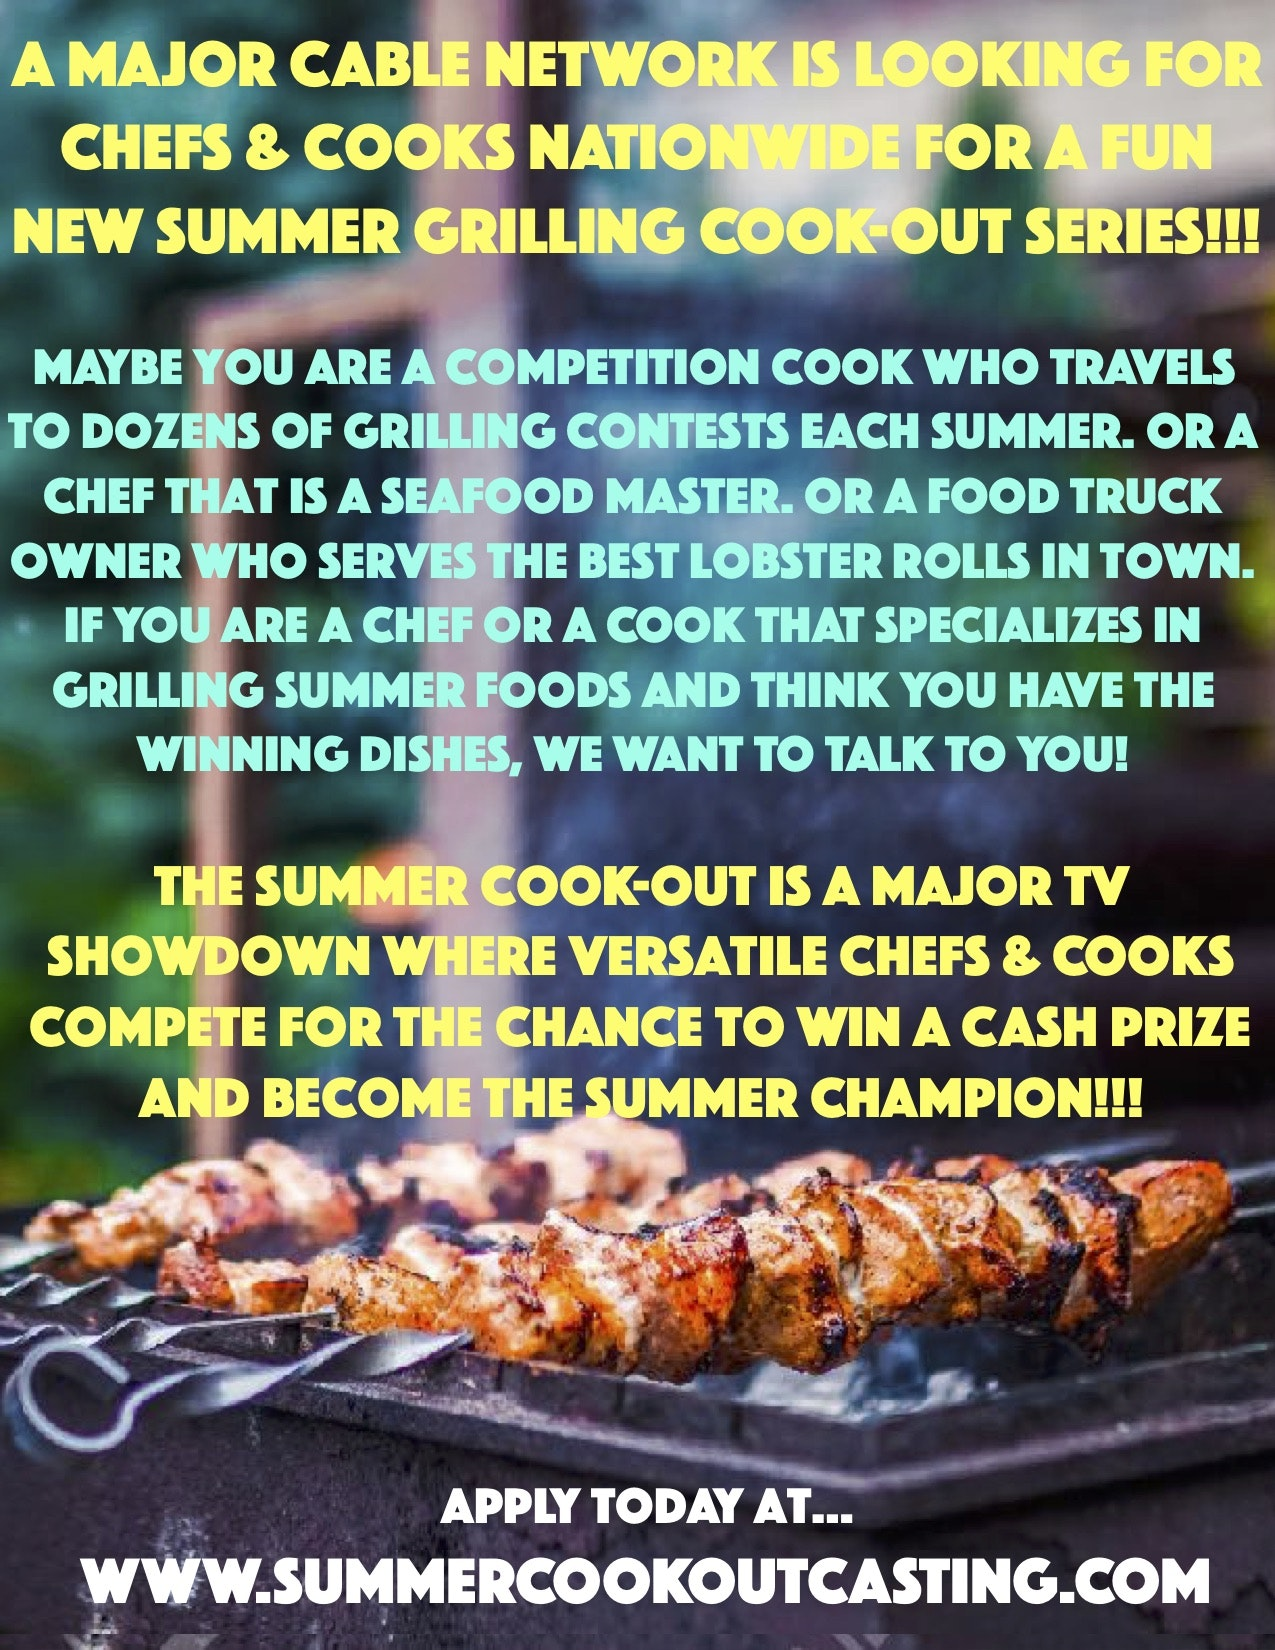 Summer Cook-Out Casting